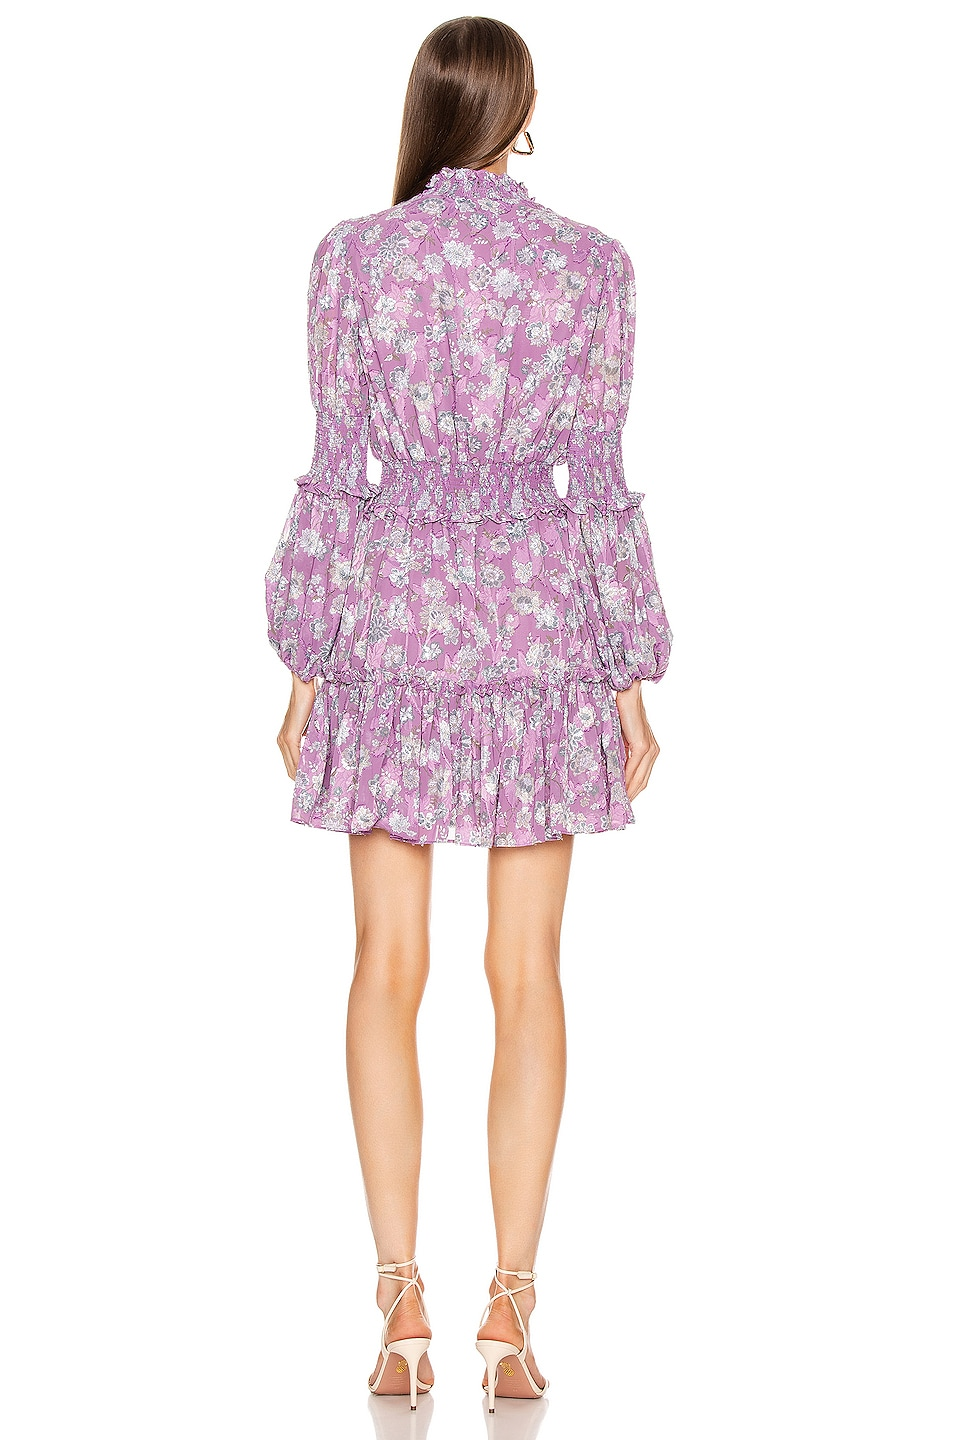 Image 3 of Alexis Rosewell Dress in Lilac Floral